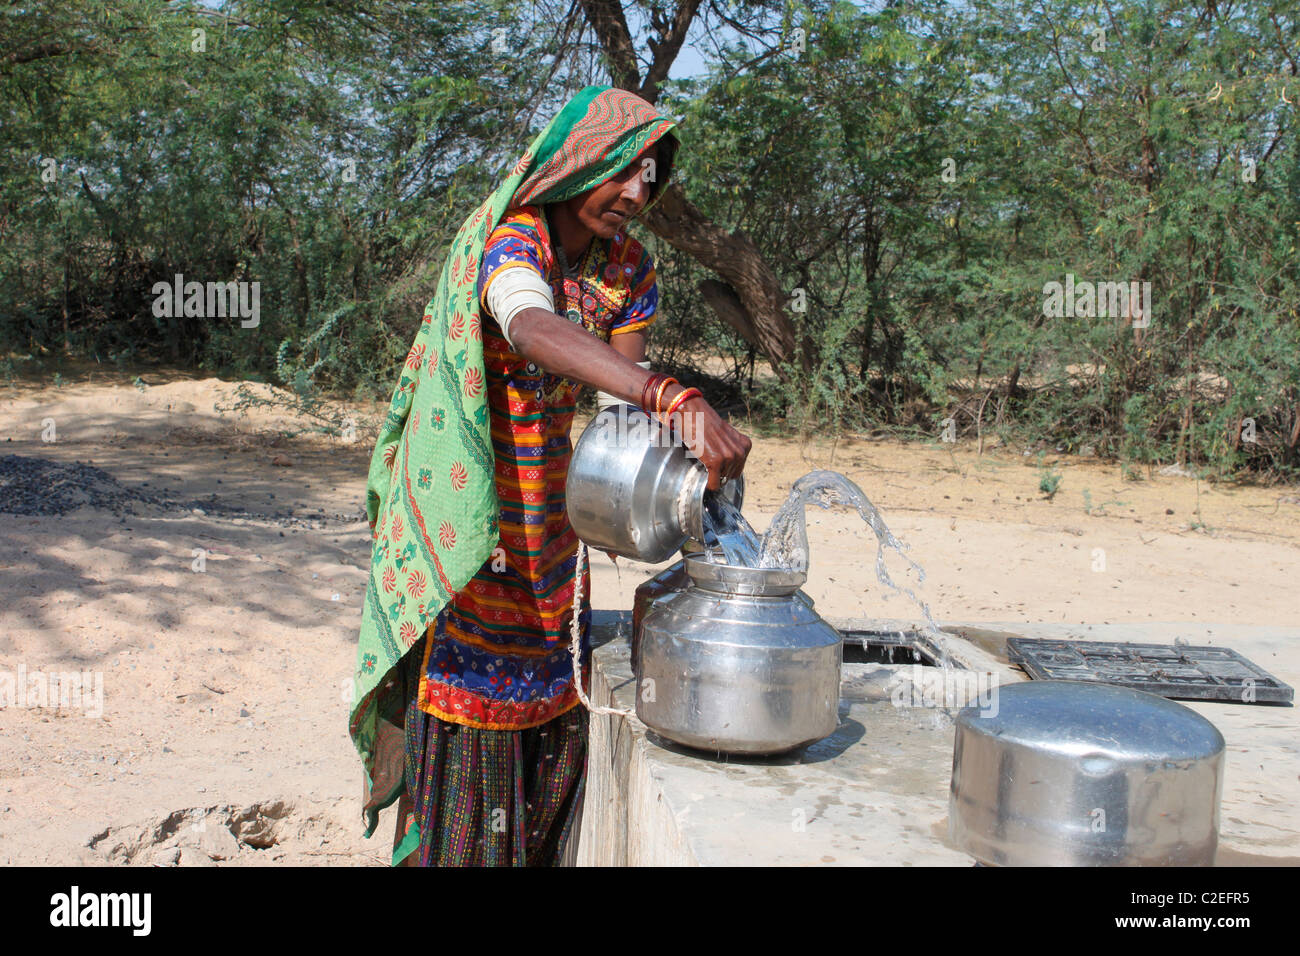 A rural woman collecting water from a well - Stock Image